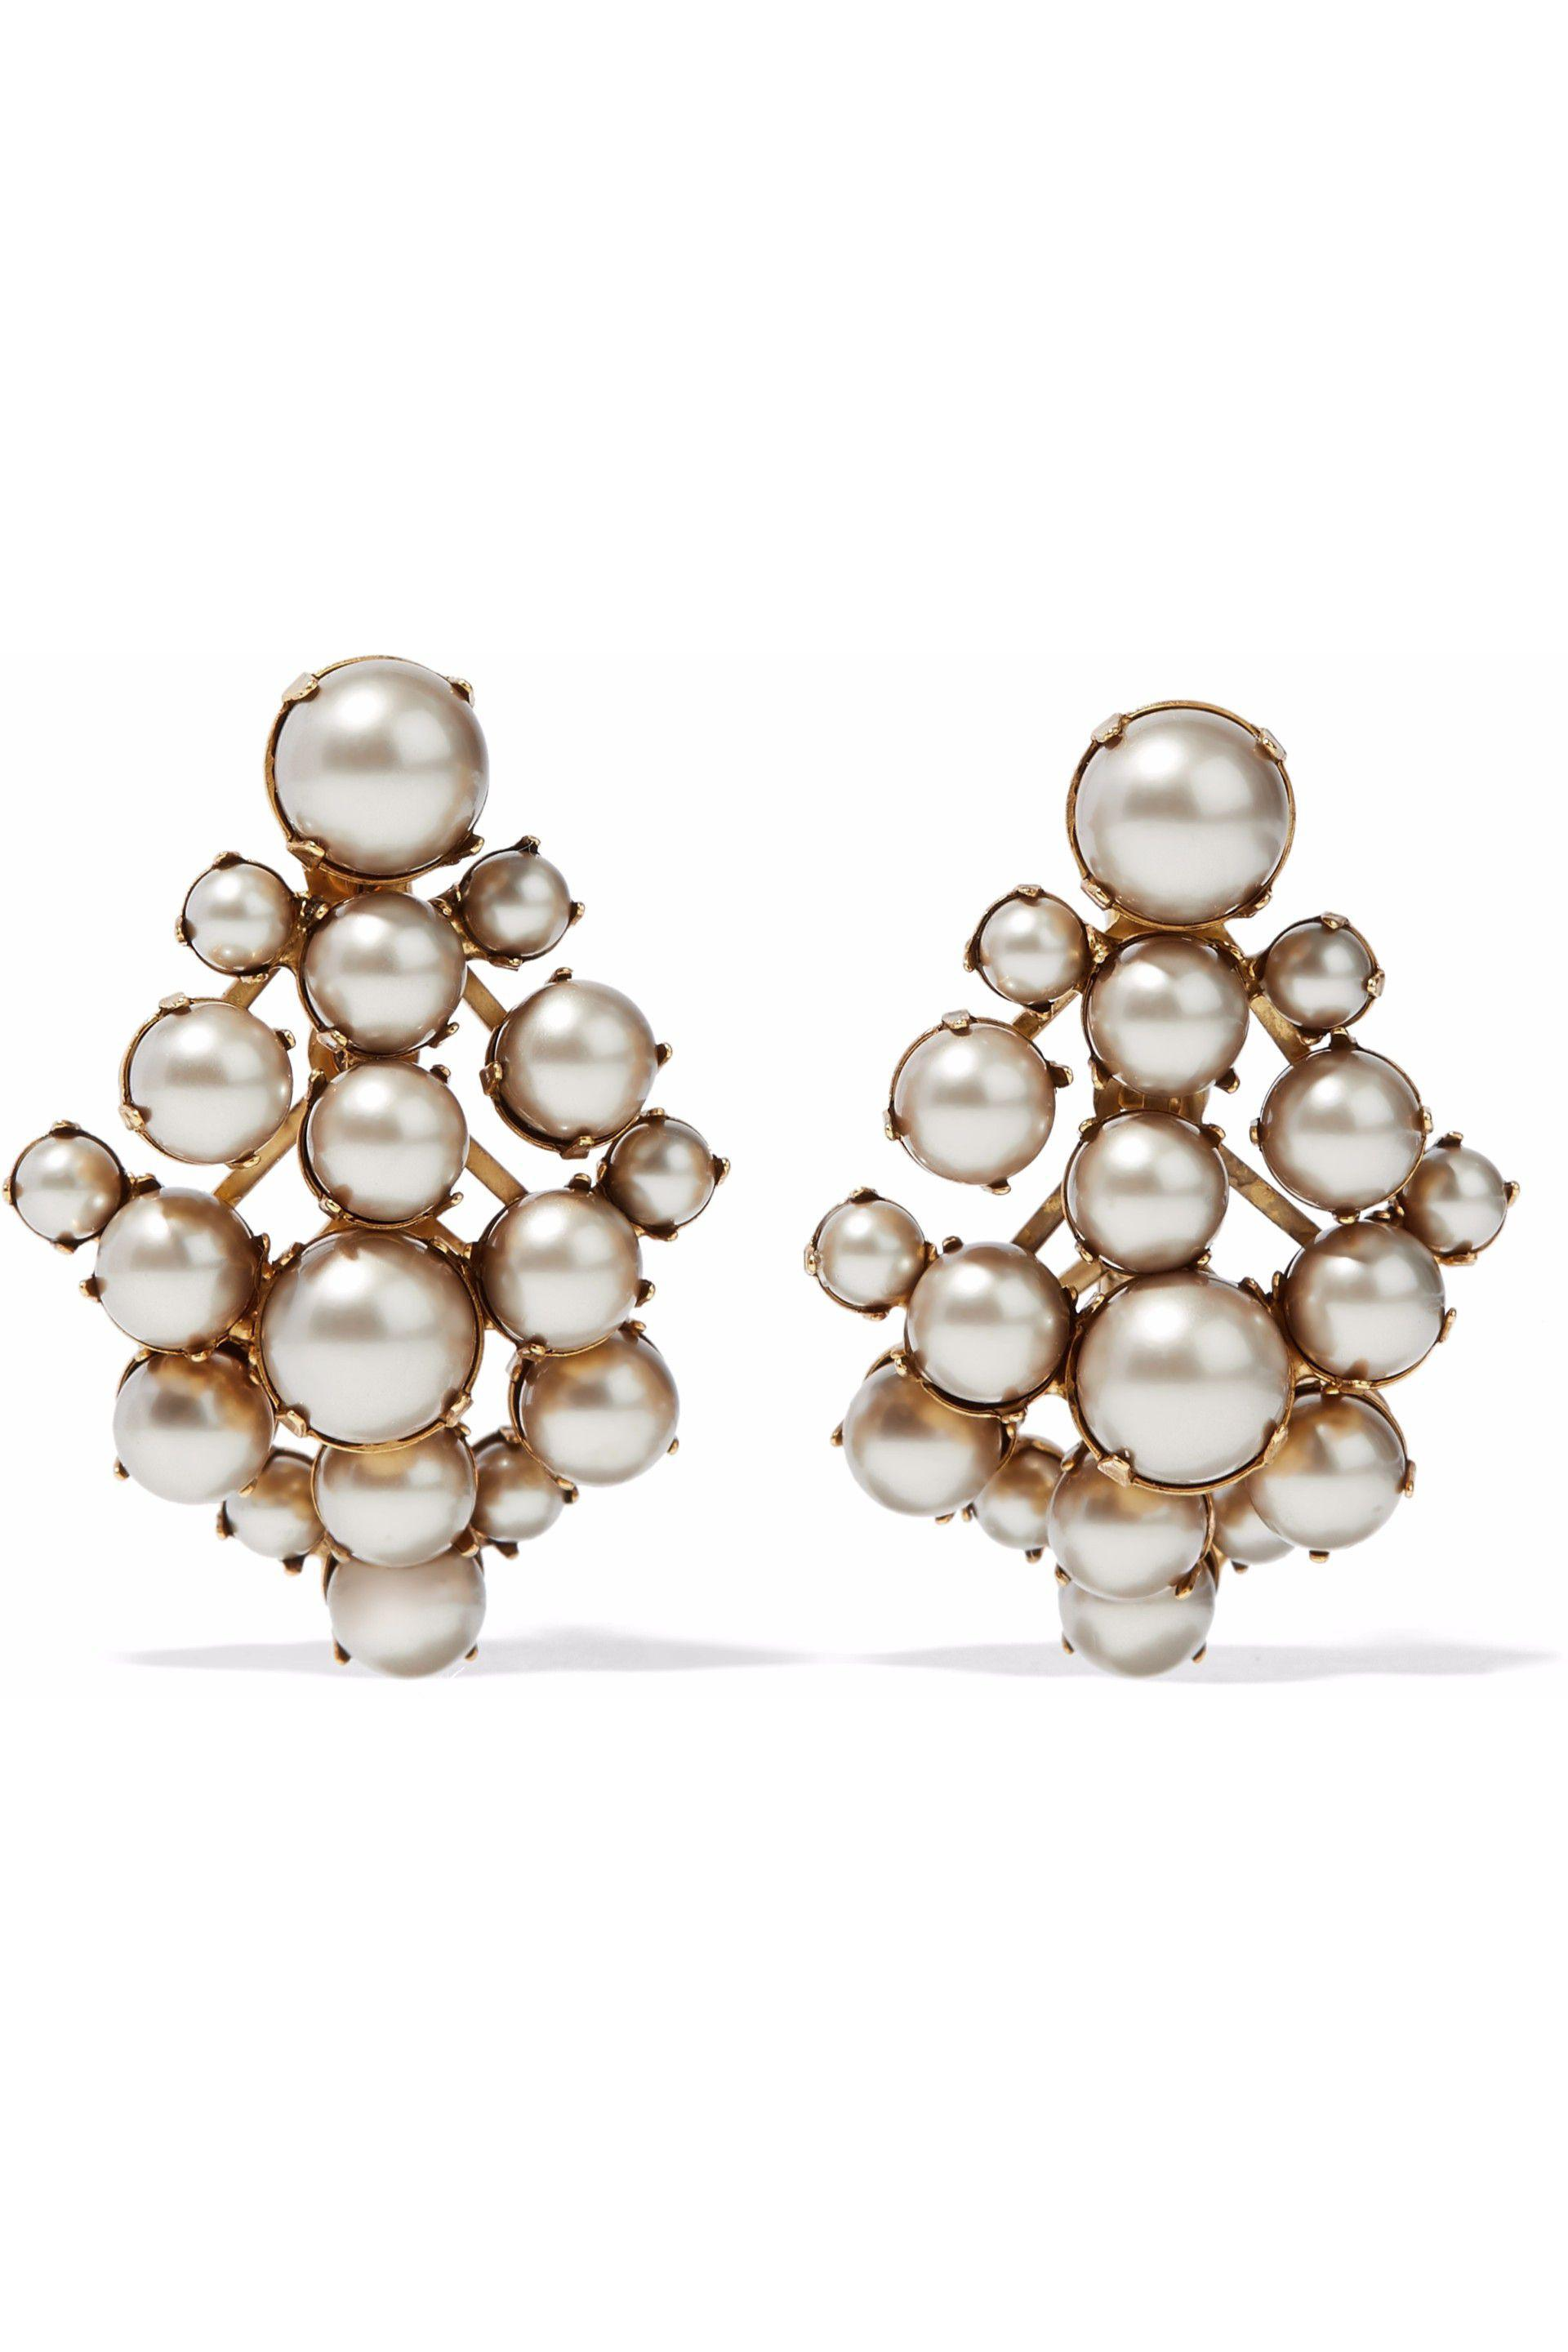 clear s ball and front amp claire stud earrings back pearl faux glass